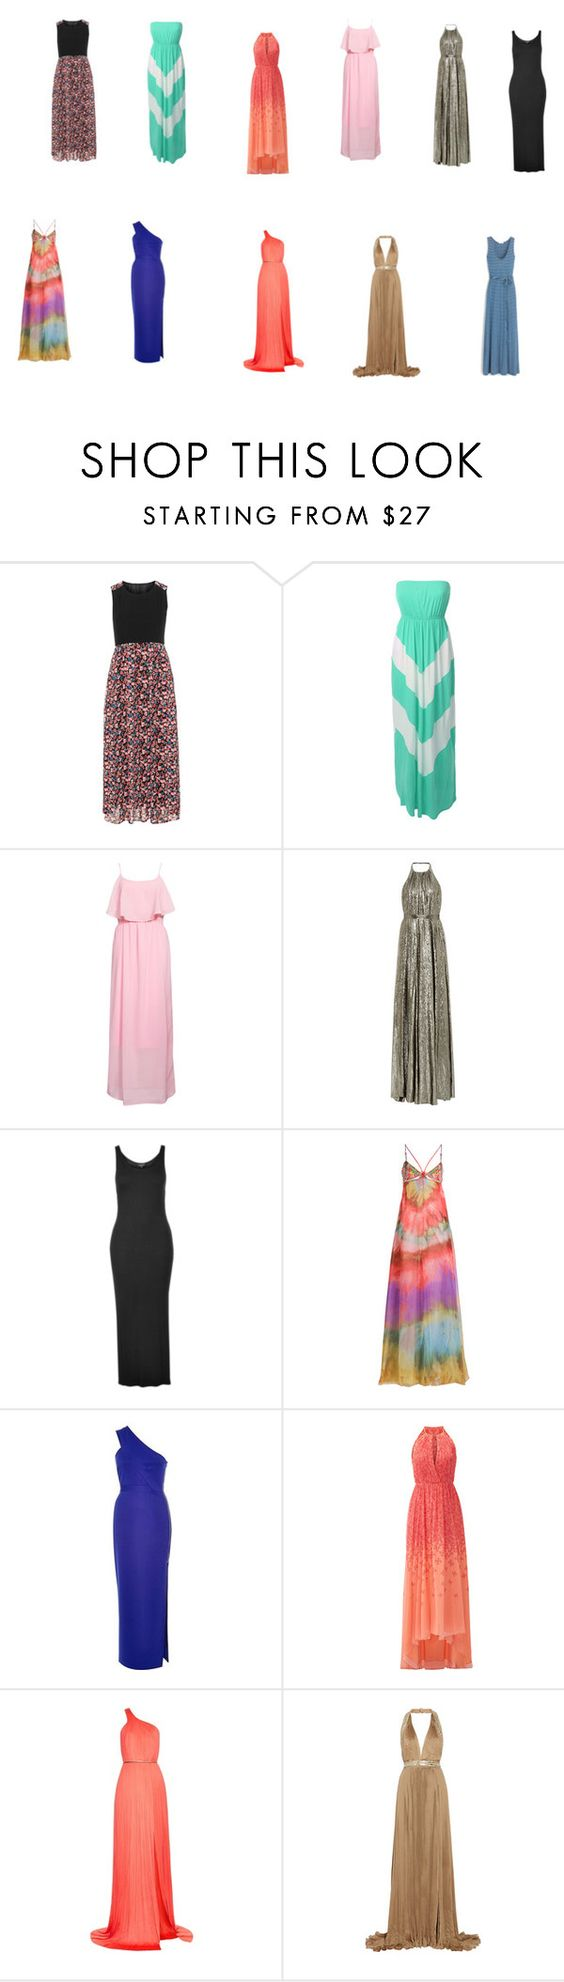 """""""maxi dresses"""" by mmartin-ii ❤ liked on Polyvore featuring Manon Baptiste, LE3NO, Rut&Circle, Topshop, Emilio Pucci, River Island, Badgley Mischka, Maria Lucia Hohan, Roberto Cavalli and J.Crew"""